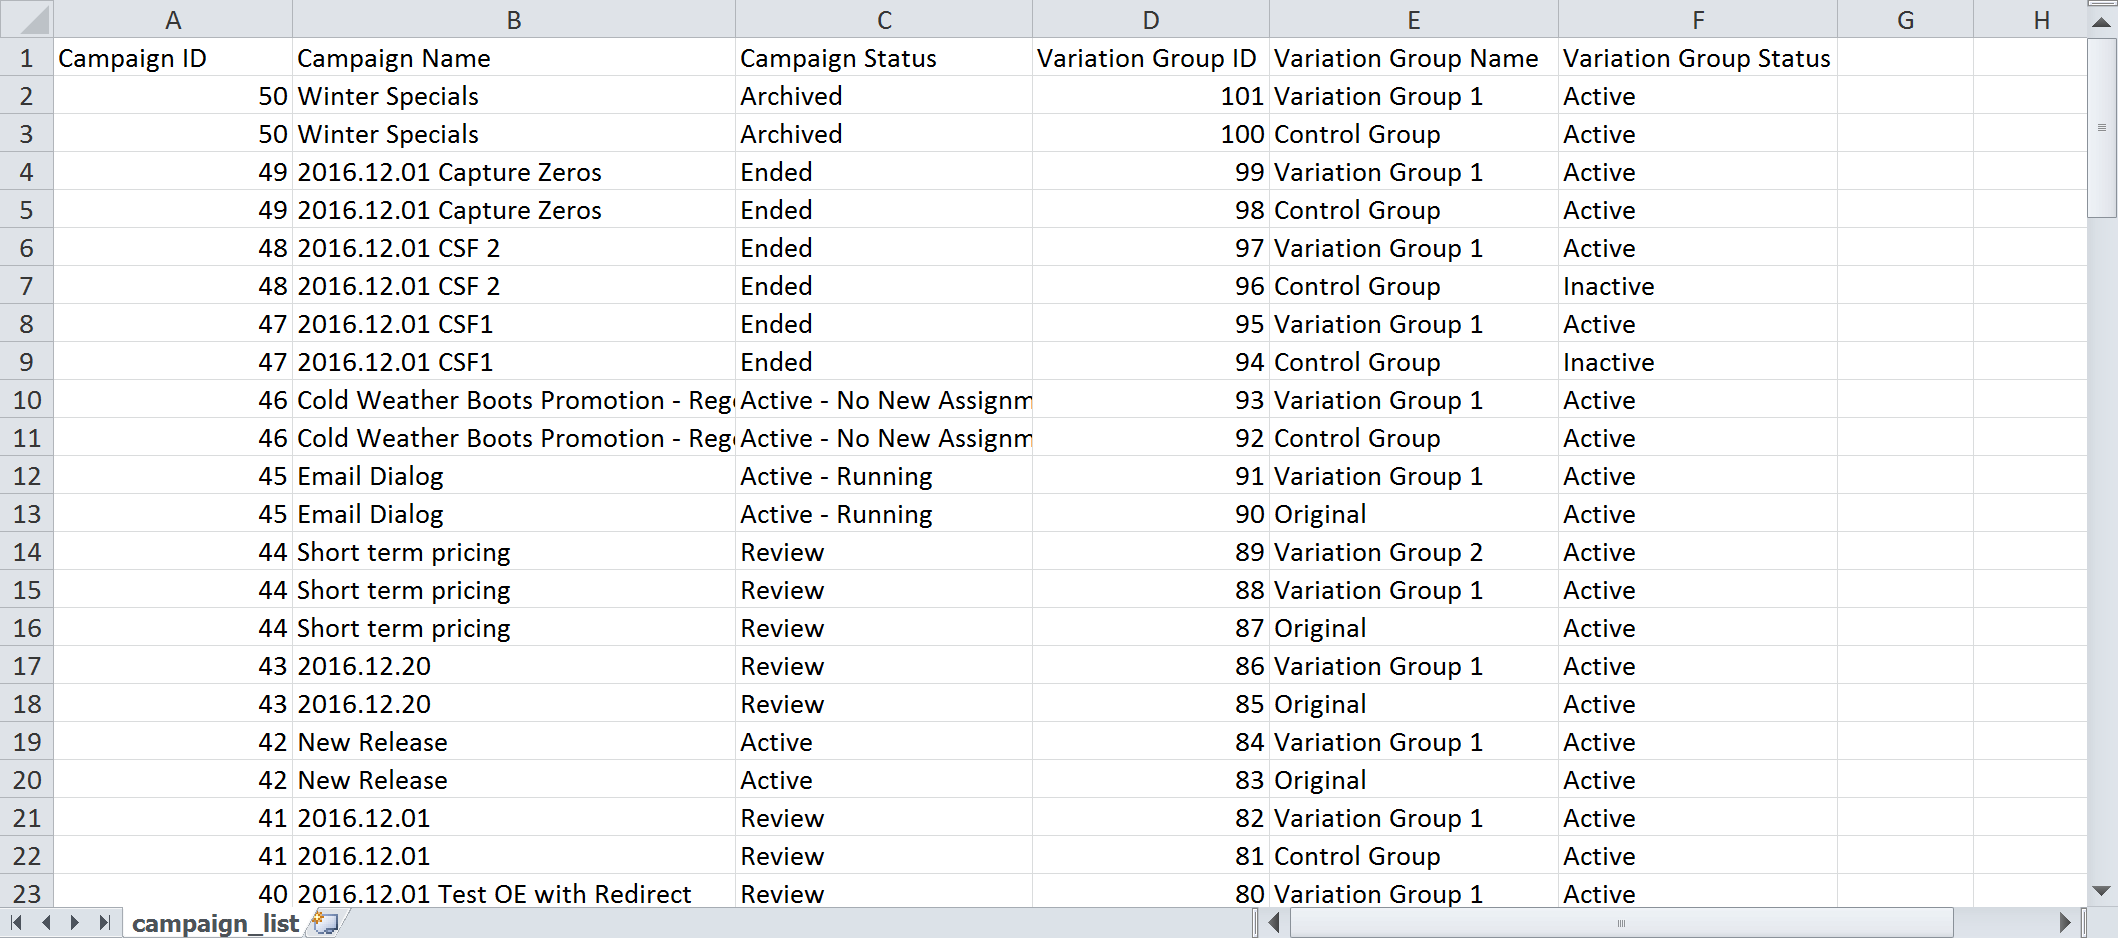 Listing Campaign and Variation Group IDs - CSV File